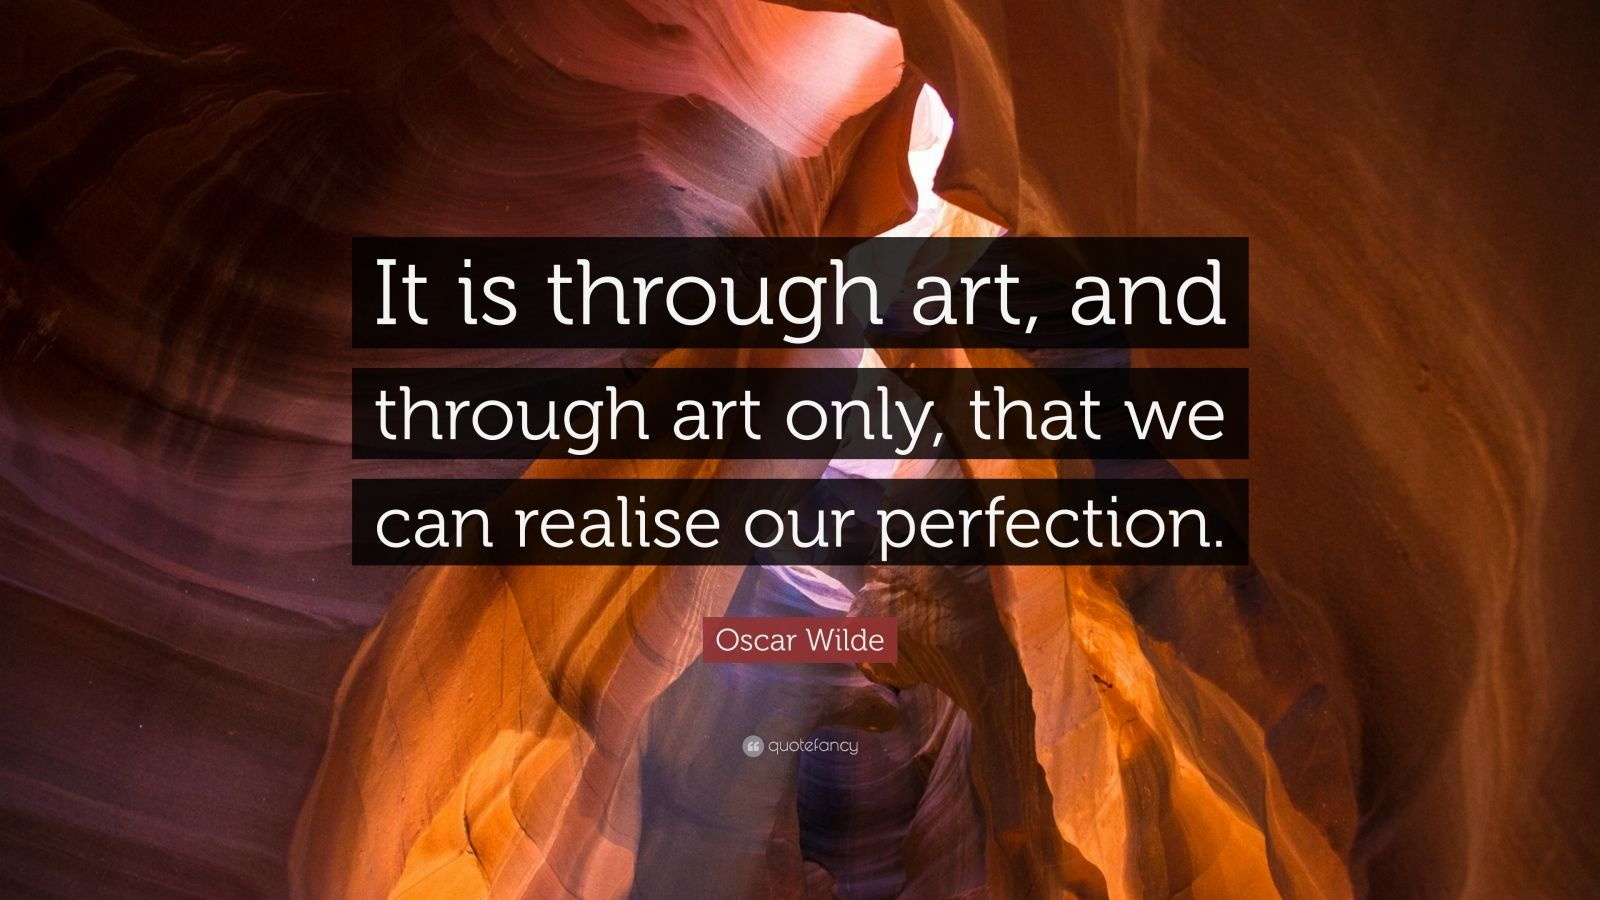 """Oscar Wilde Quote: """"It is through art, and through art only, that we can realise our perfection."""""""